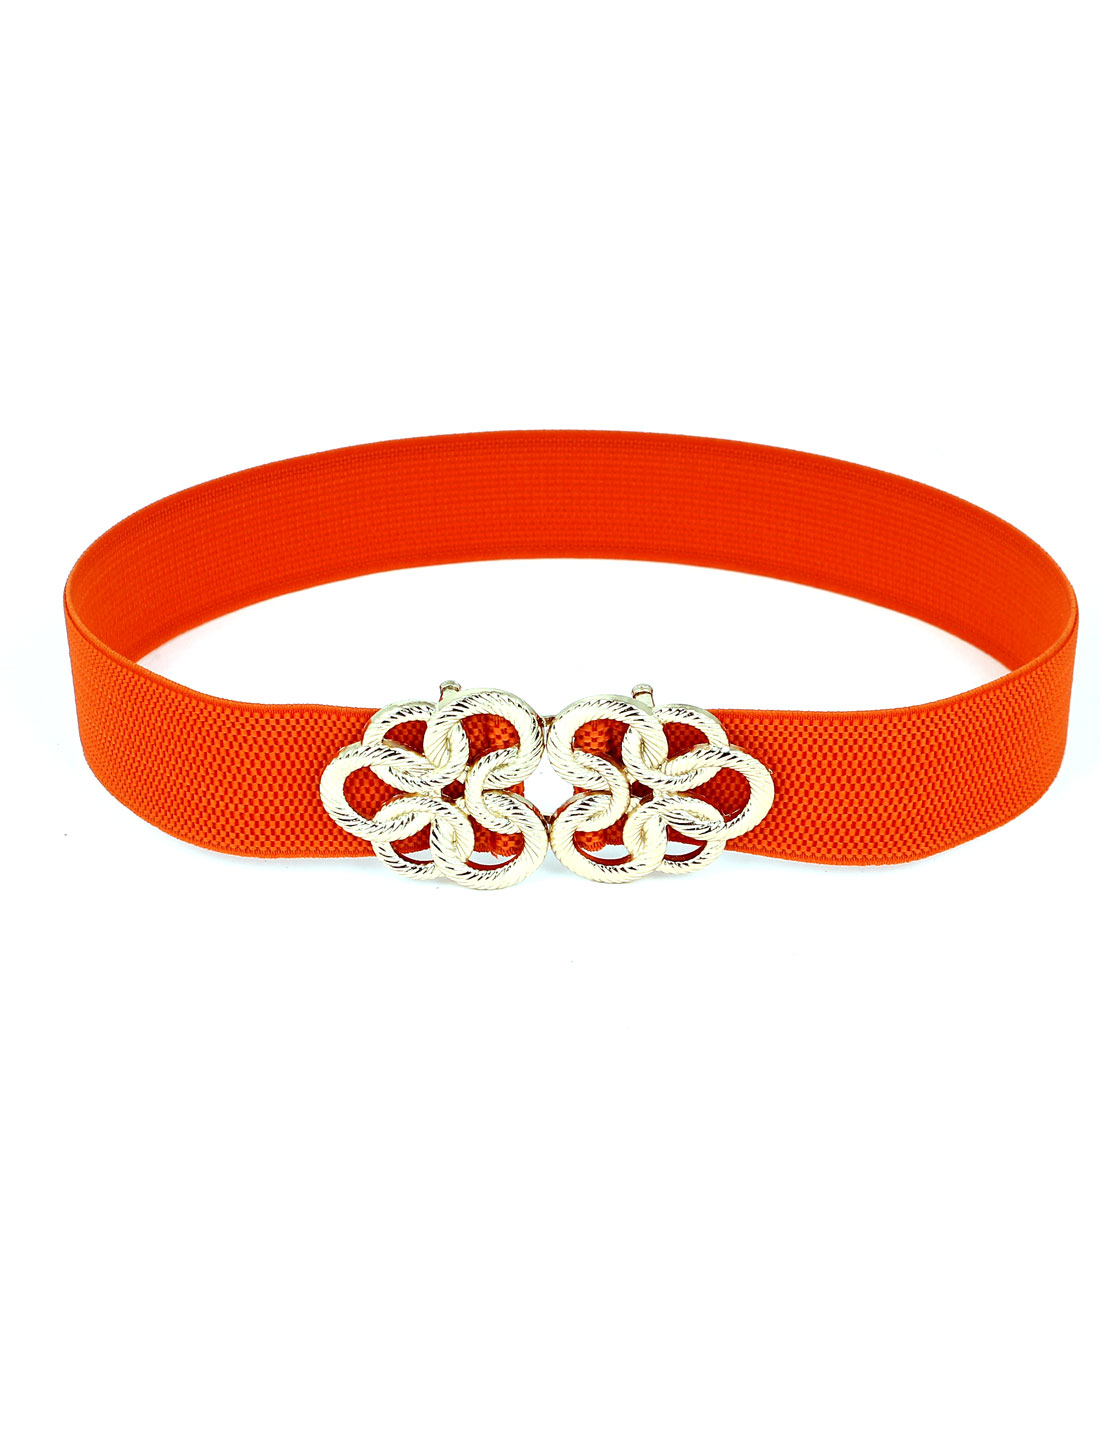 Twisted Circle Flower Buckle Stretch High Waist Belt Orange for Ladies Woman